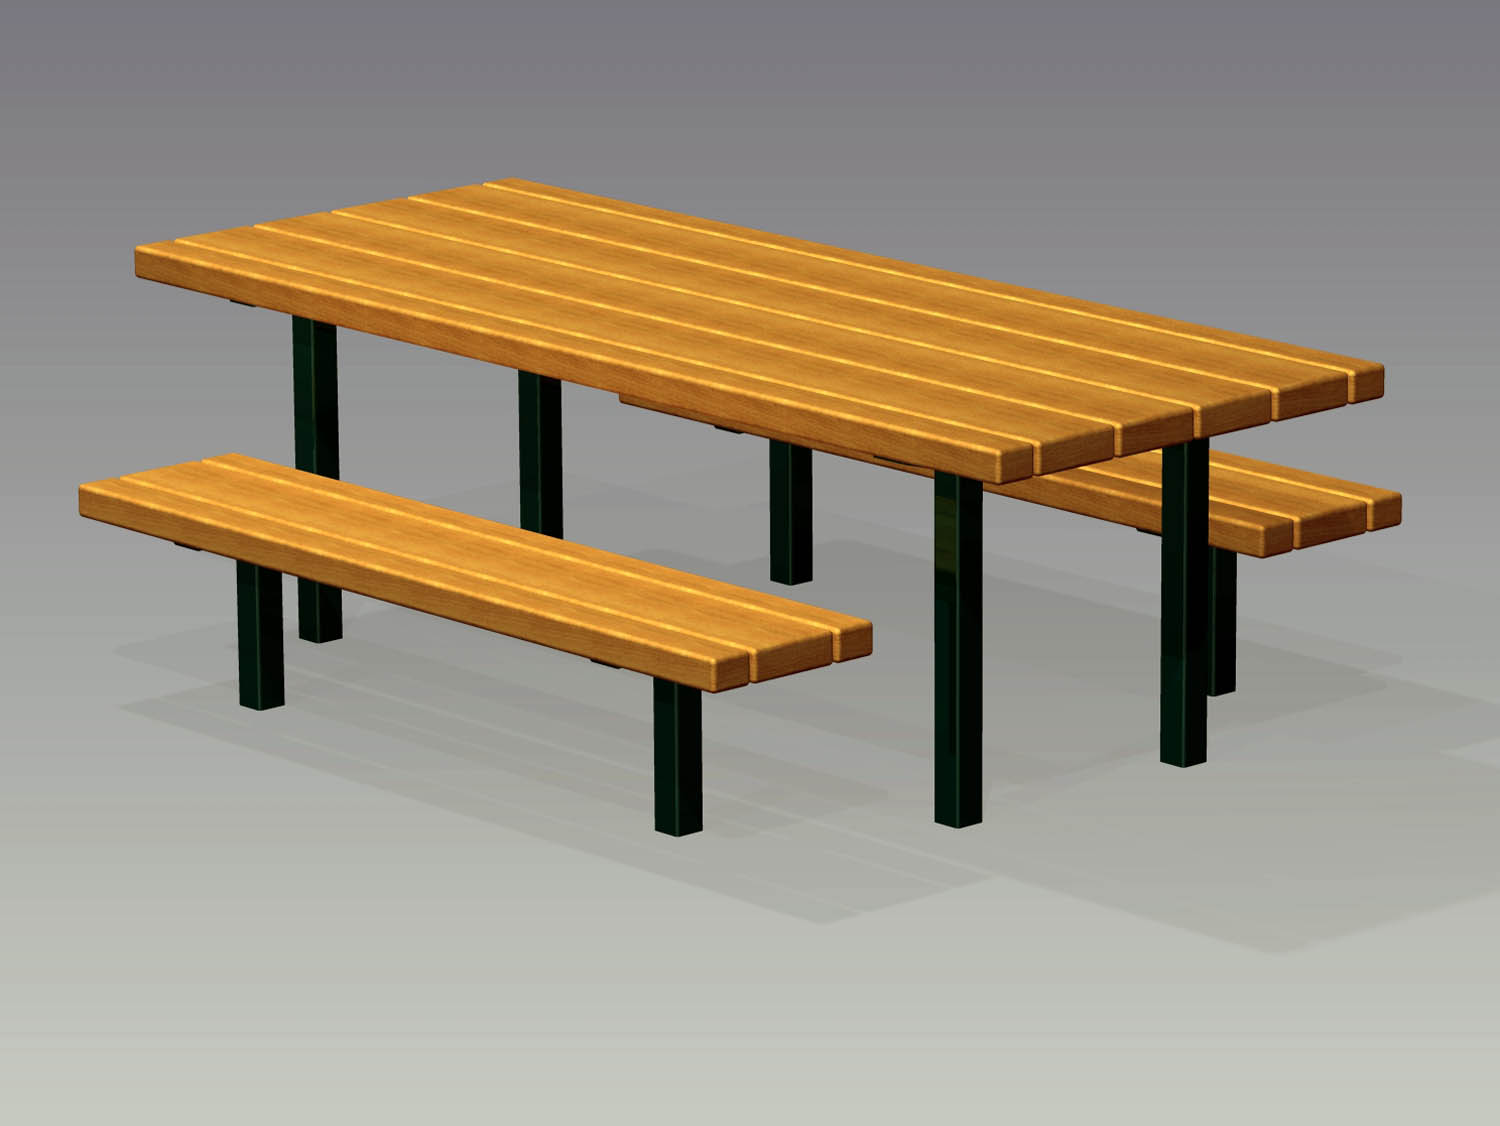 Picnic Table Drawing At Getdrawings Com Free For